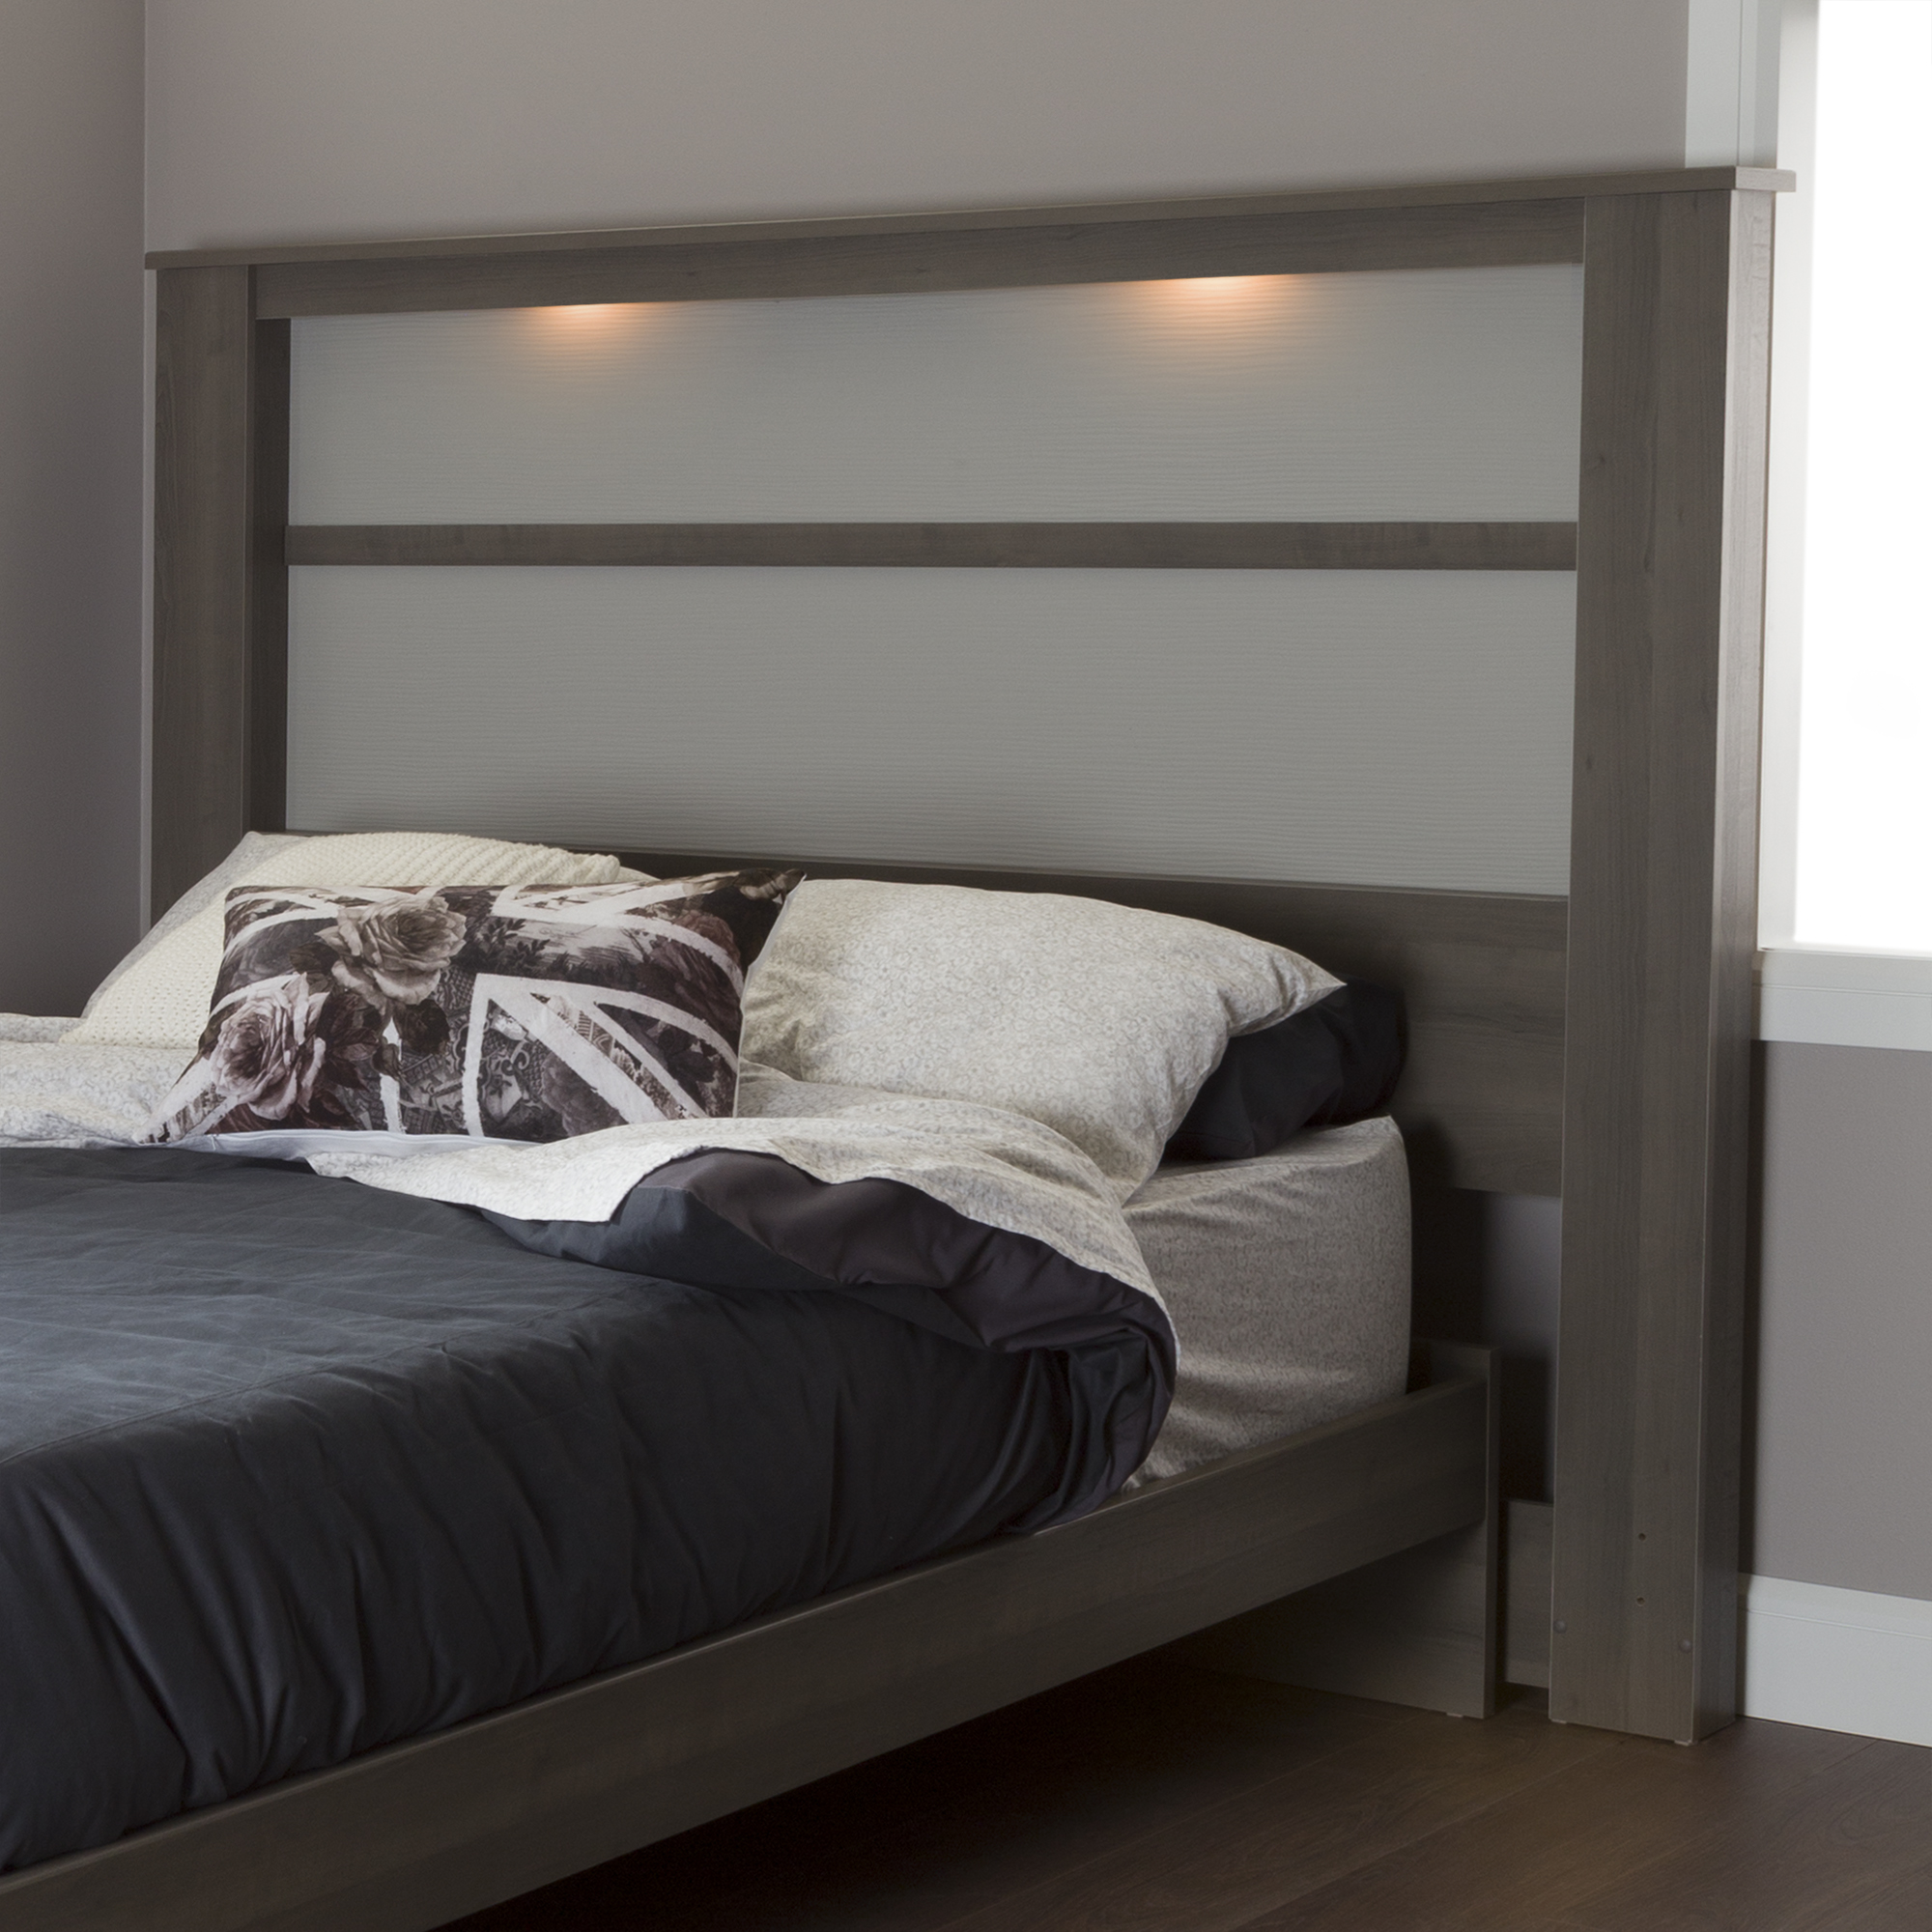 South Shore Gloria King Headboard 78 With Lights Gray